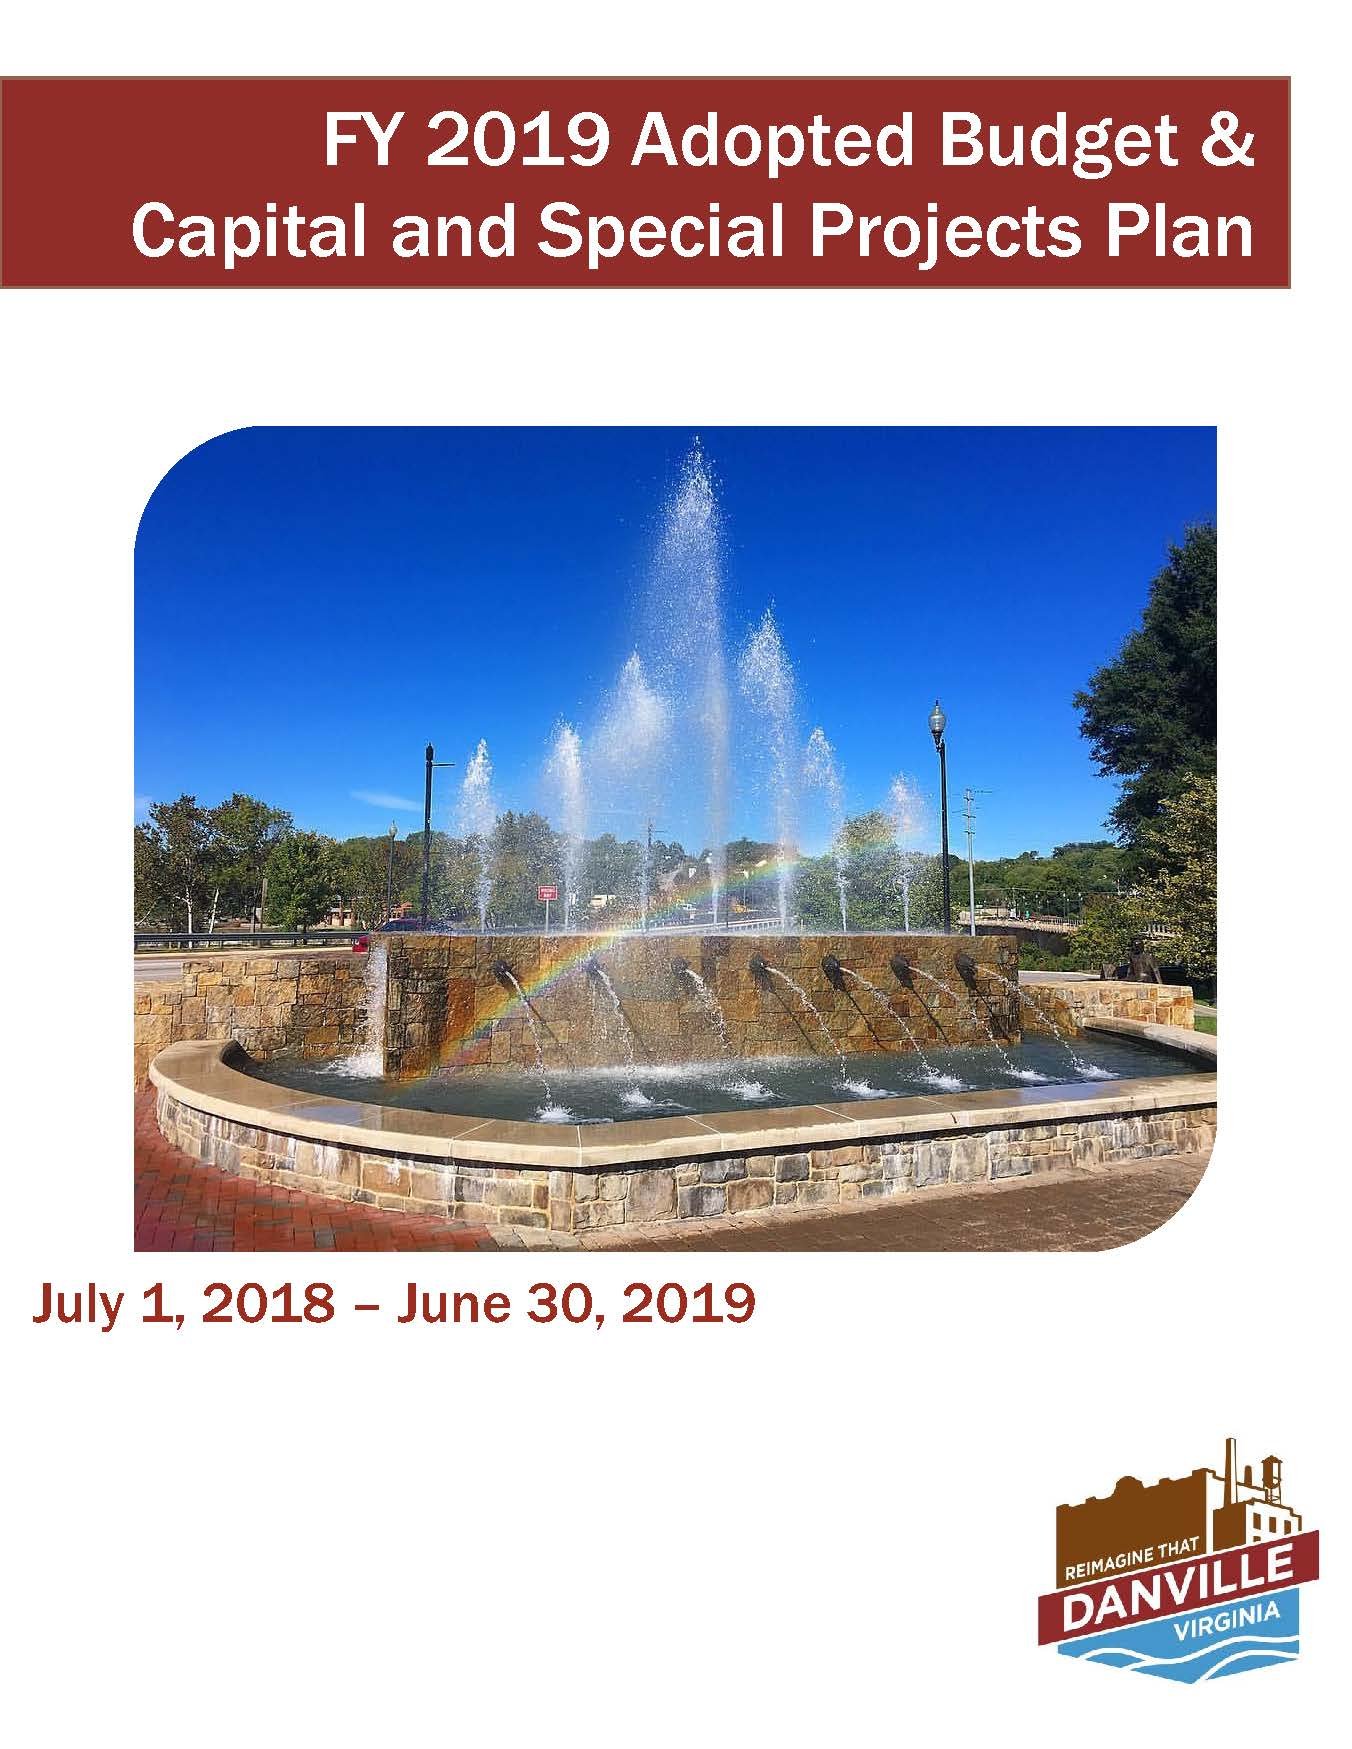 FY 2019 Adopted Budget Cover Page